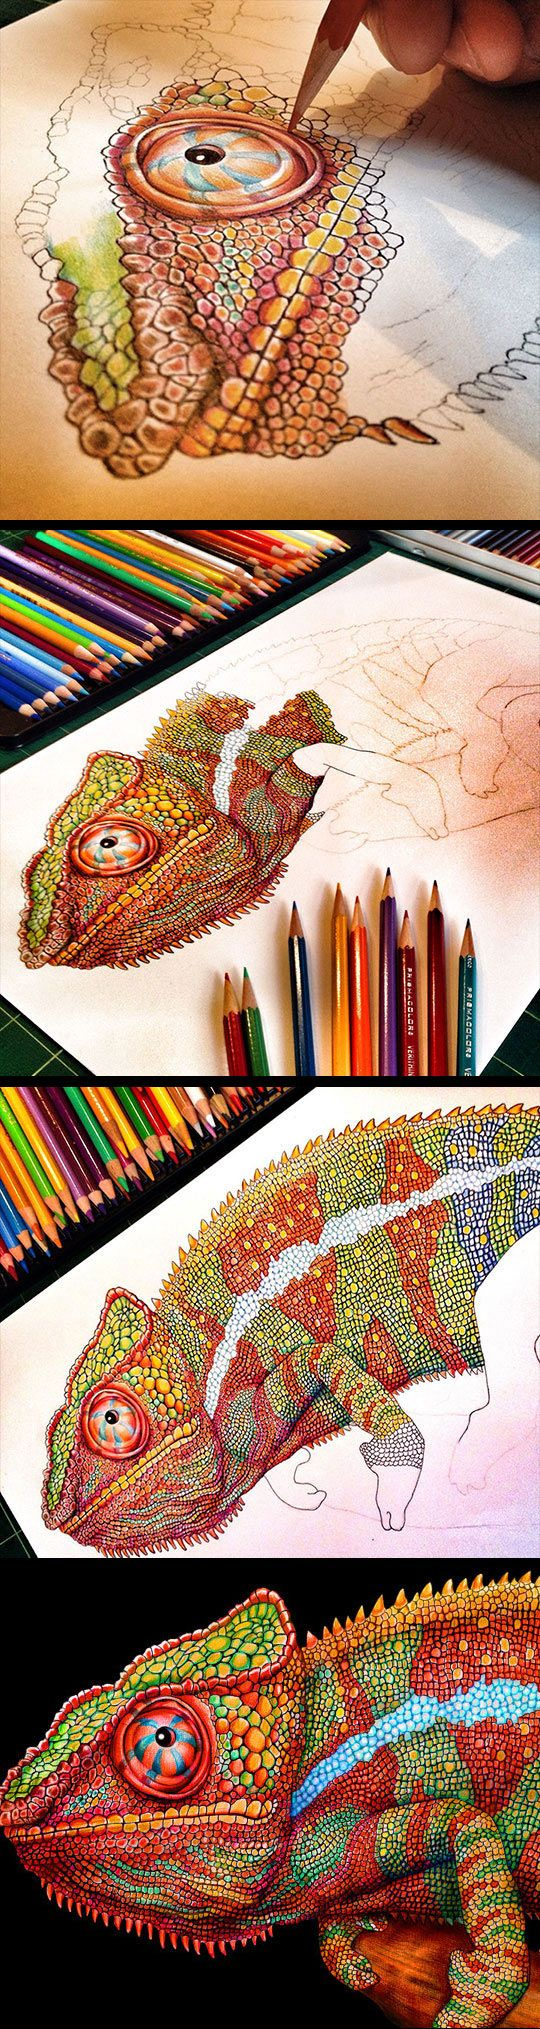 The Most Detailed Drawing Of A Chameleon by Tim Jeffs Art